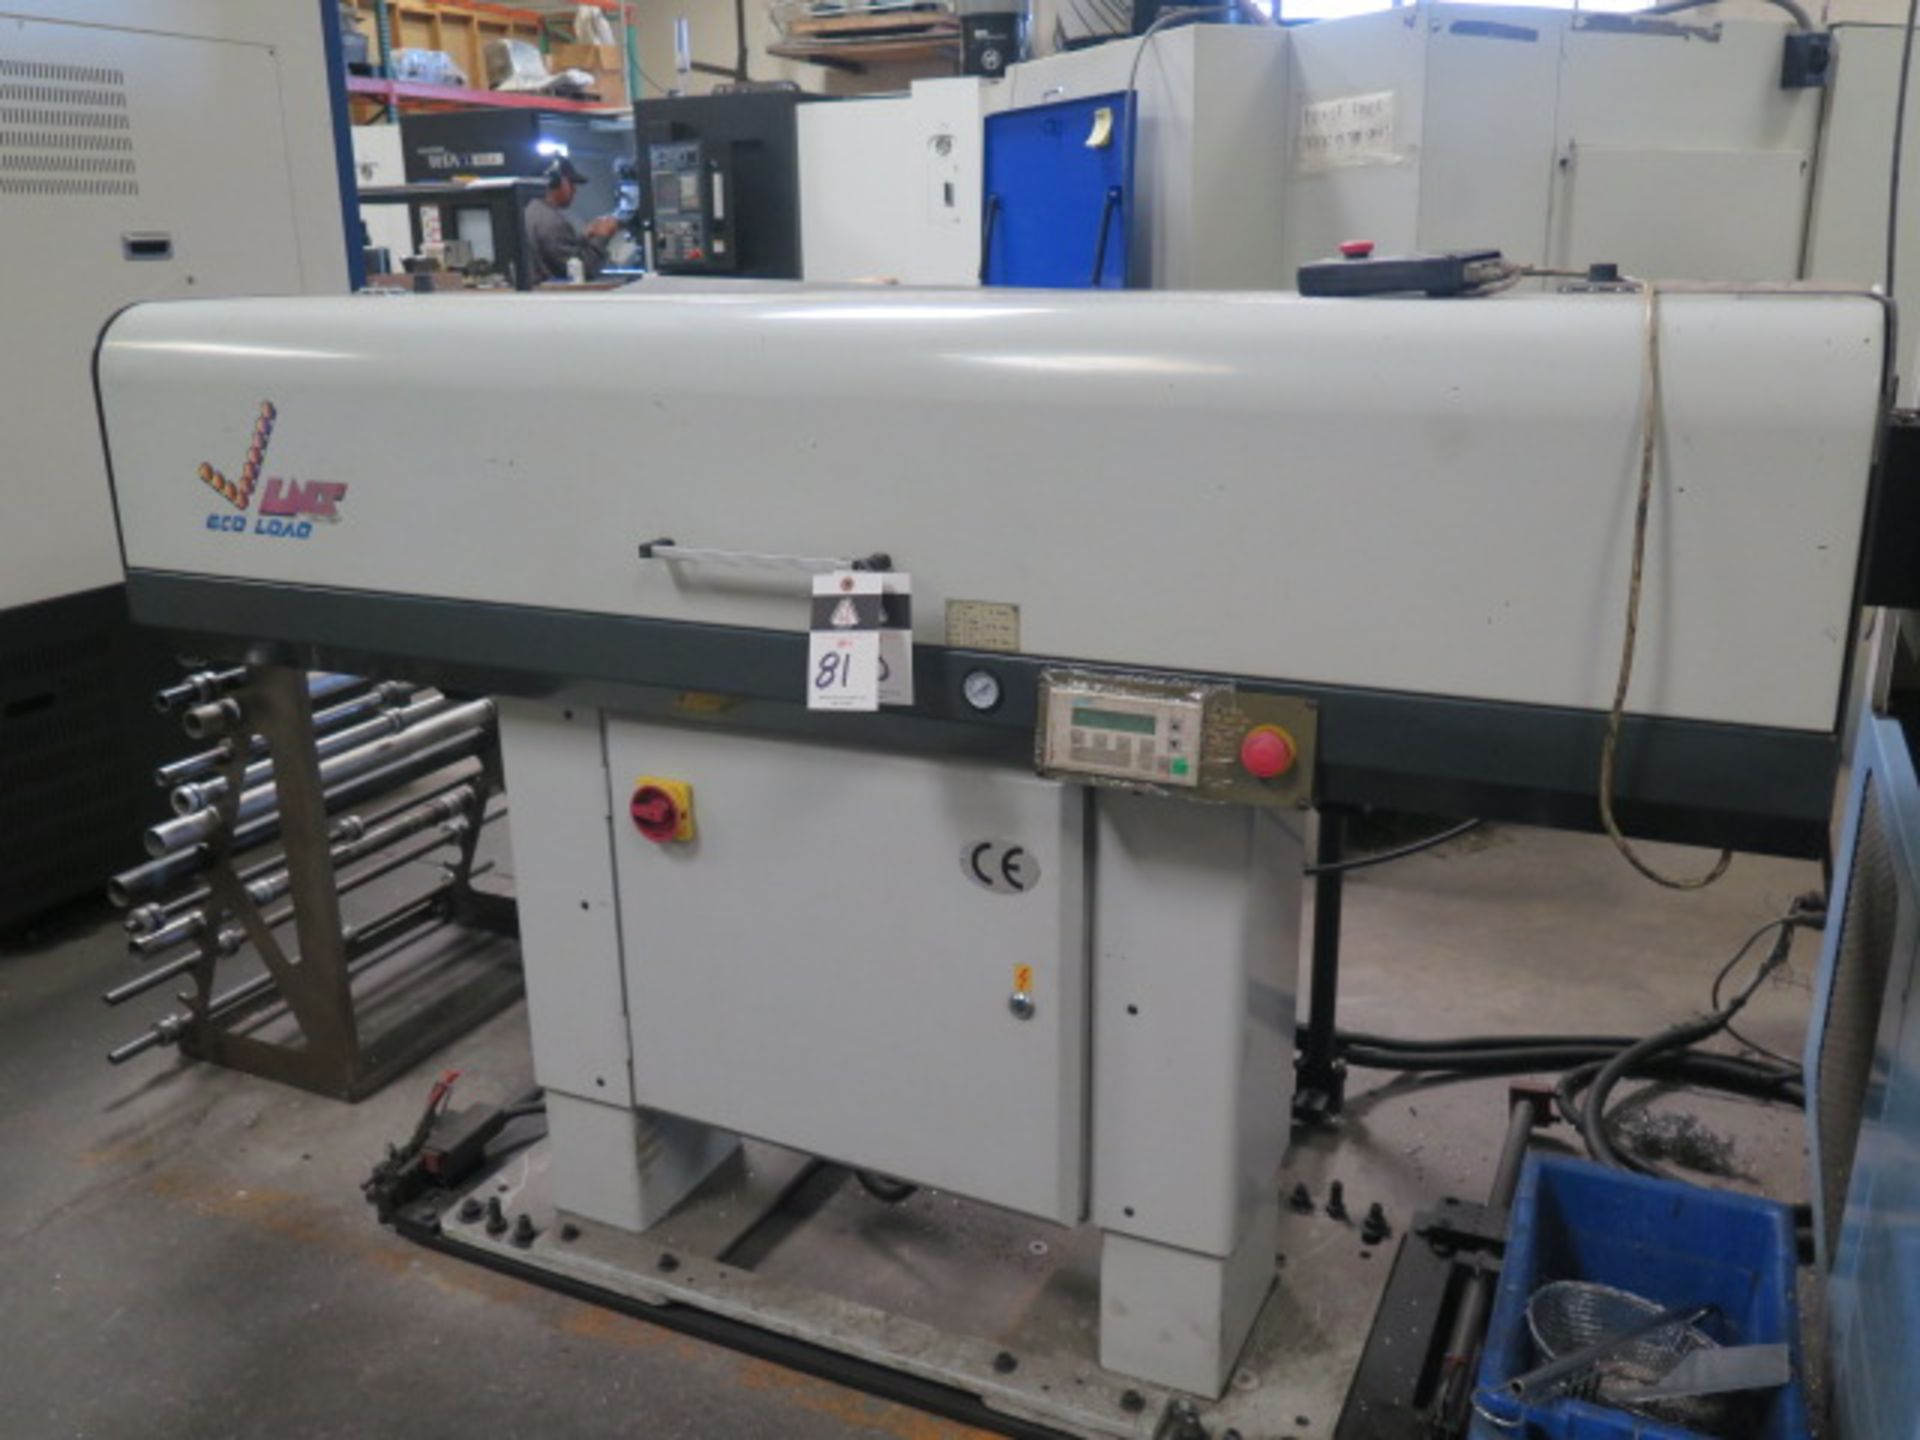 LNS Eco Load Automatic Bar Loader / Feeder (SOLD AS-IS - NO WARRANTY)